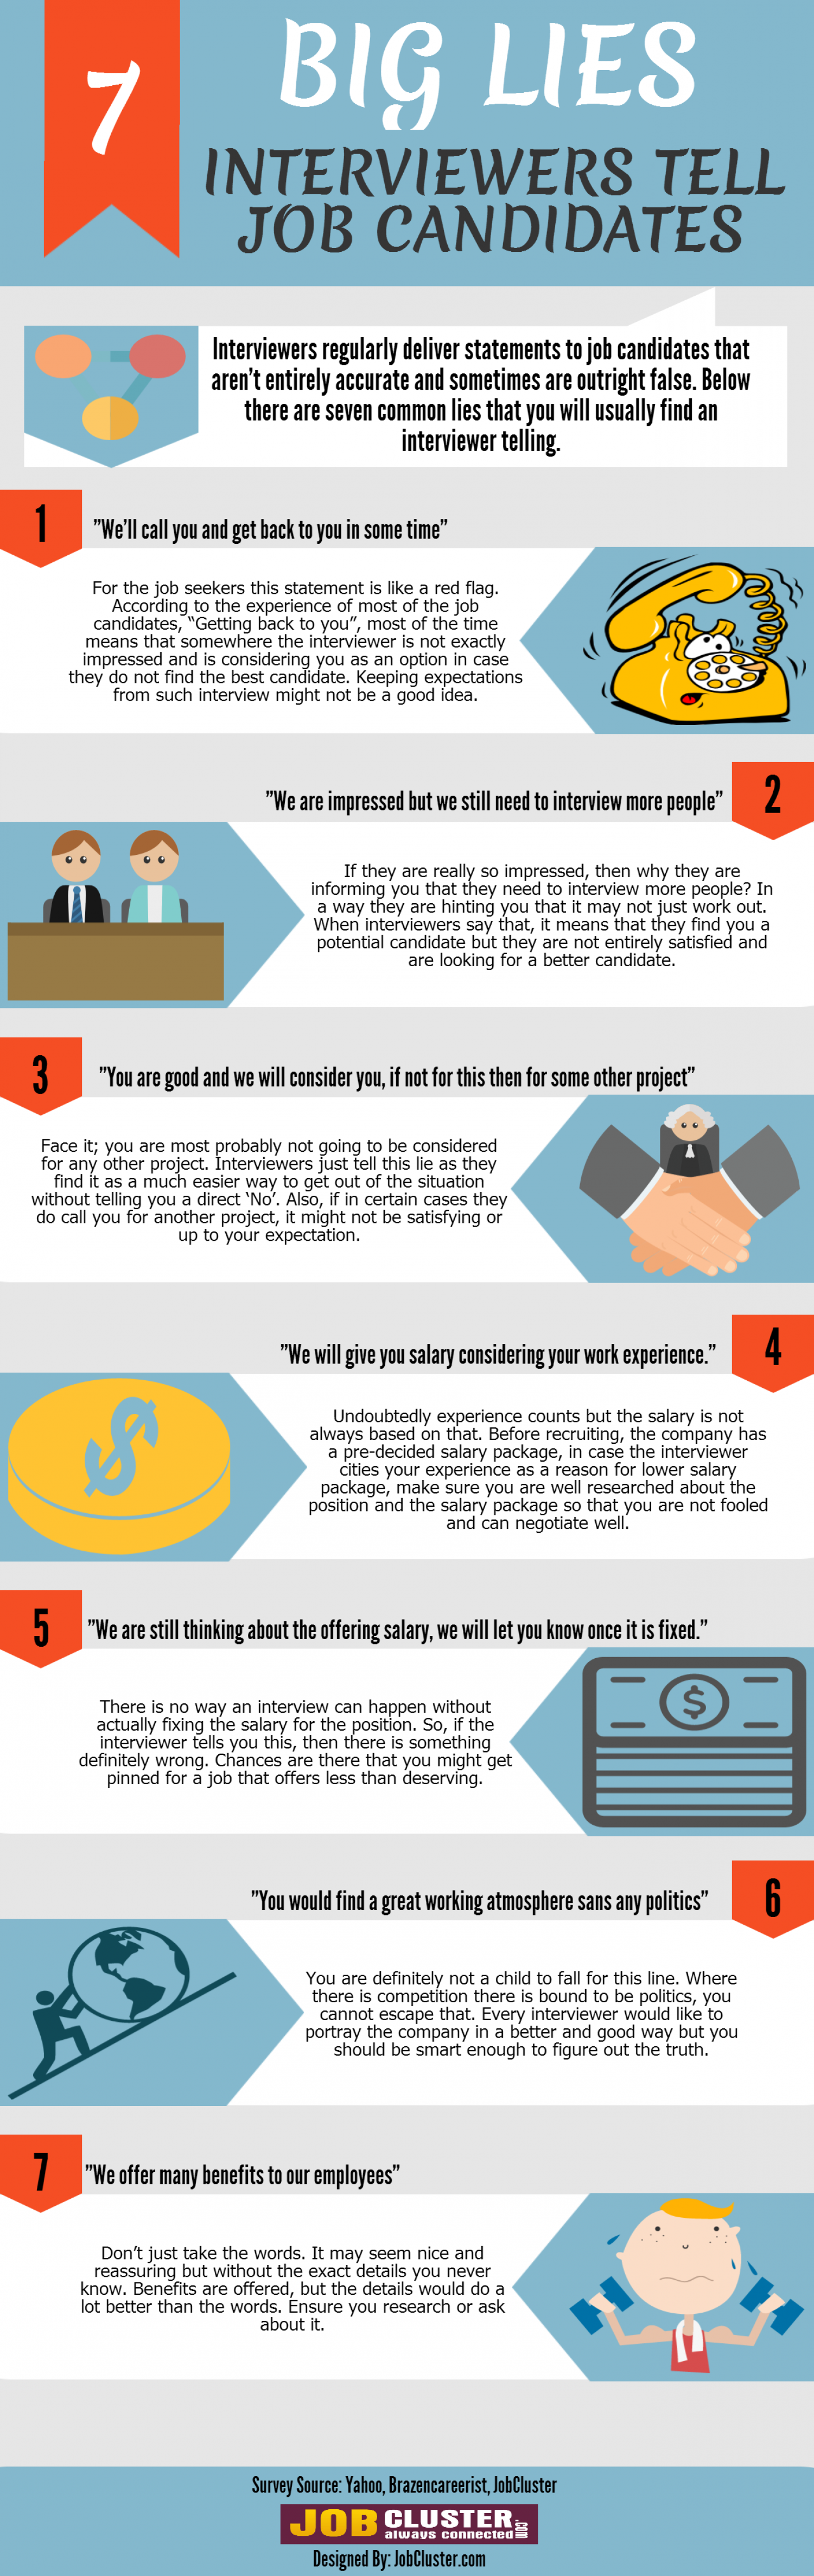 7 Big Lies Interviewers Tell Job Candidates Infographic